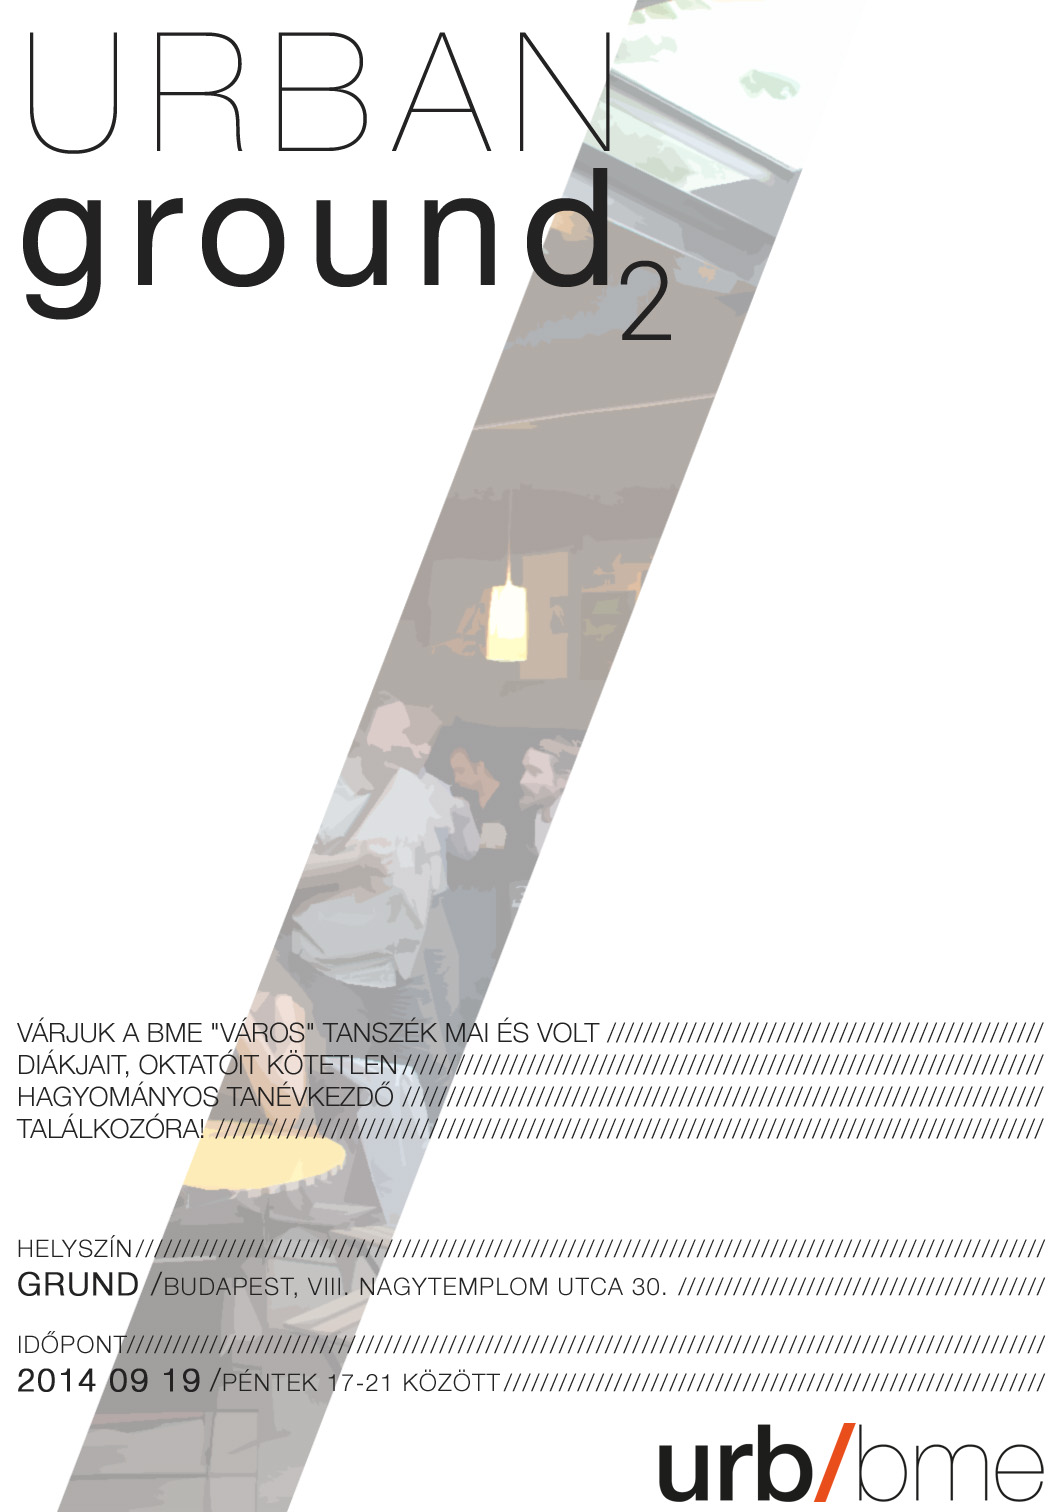 urban GROUND 2014 L